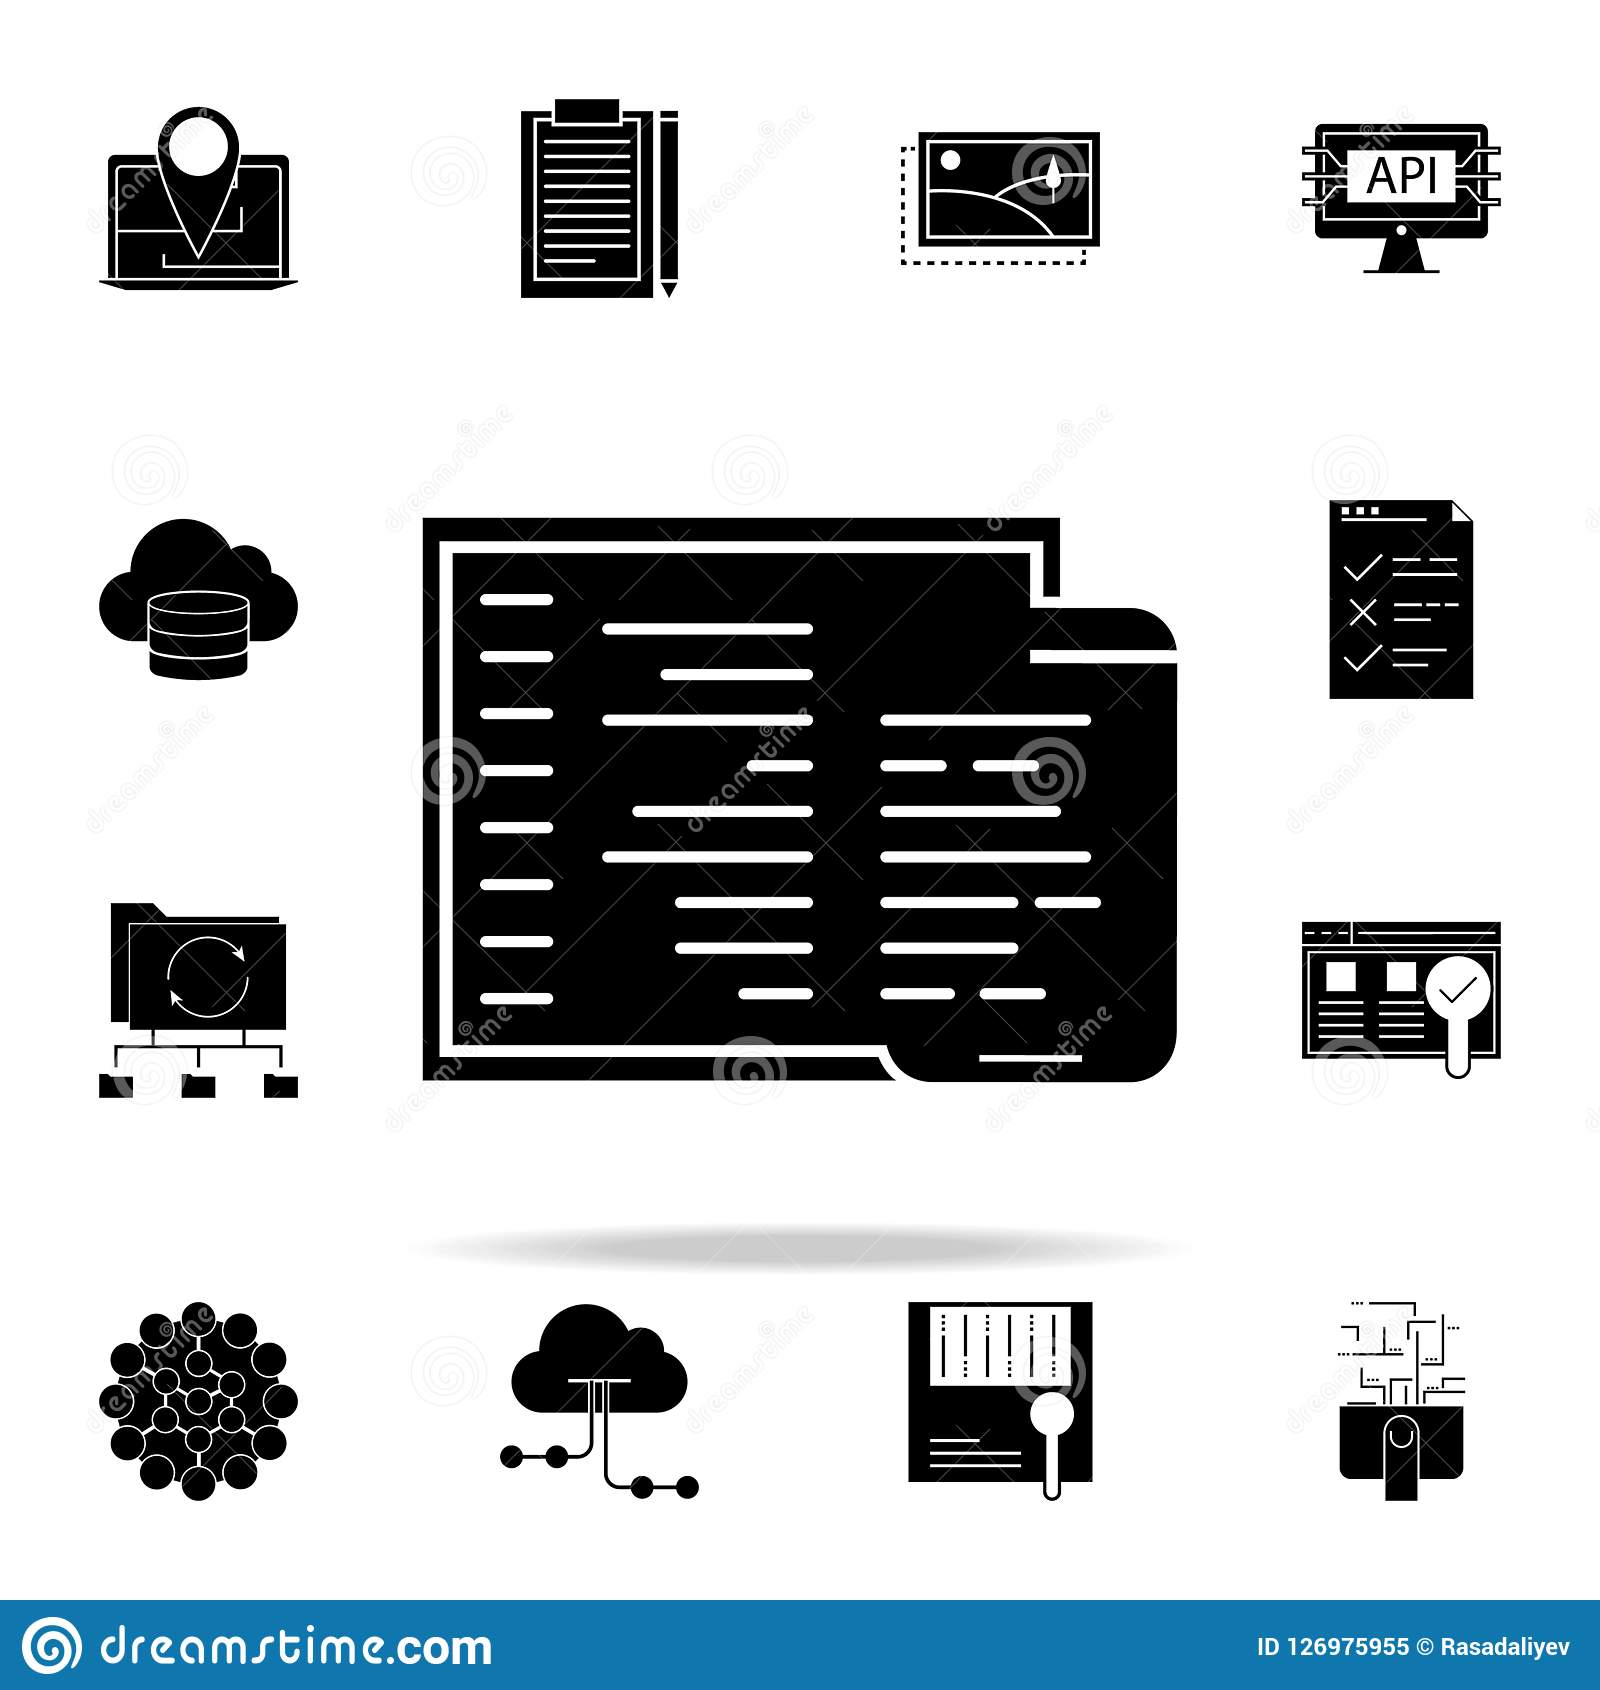 adaptive coding icon. Web Development icons universal set for web and mobile